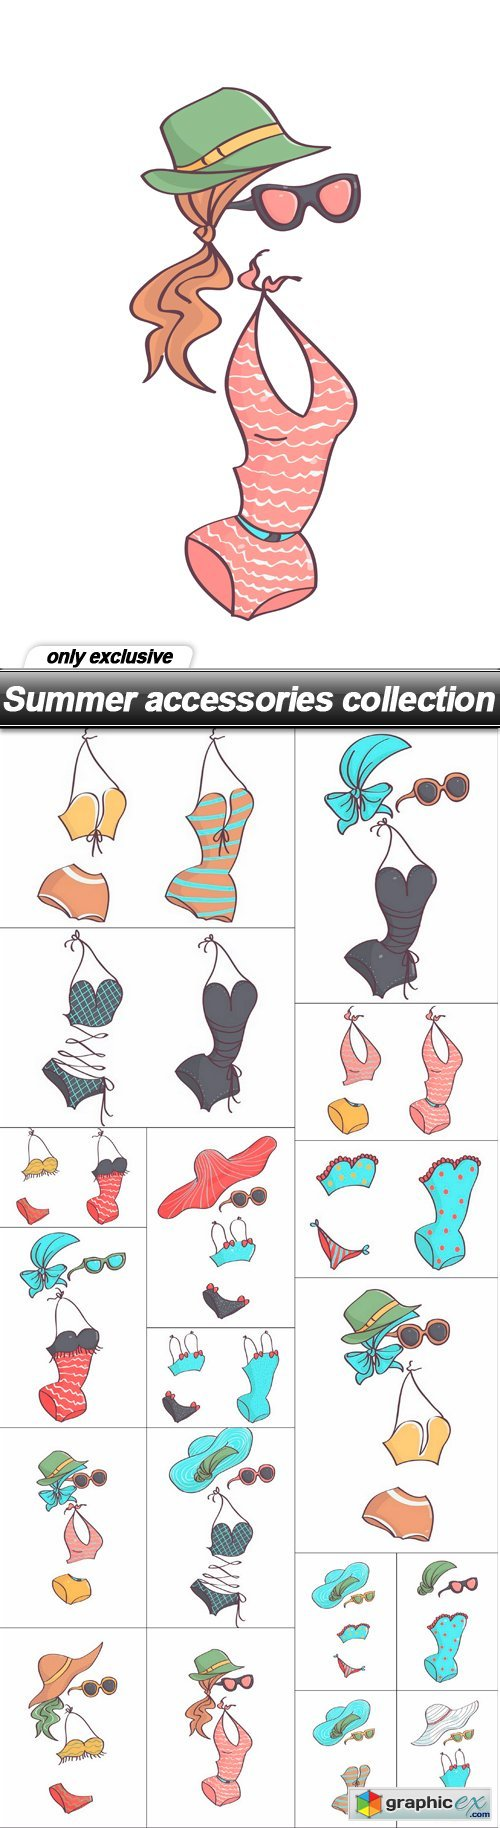 Summer accessories collection - 18 EPS